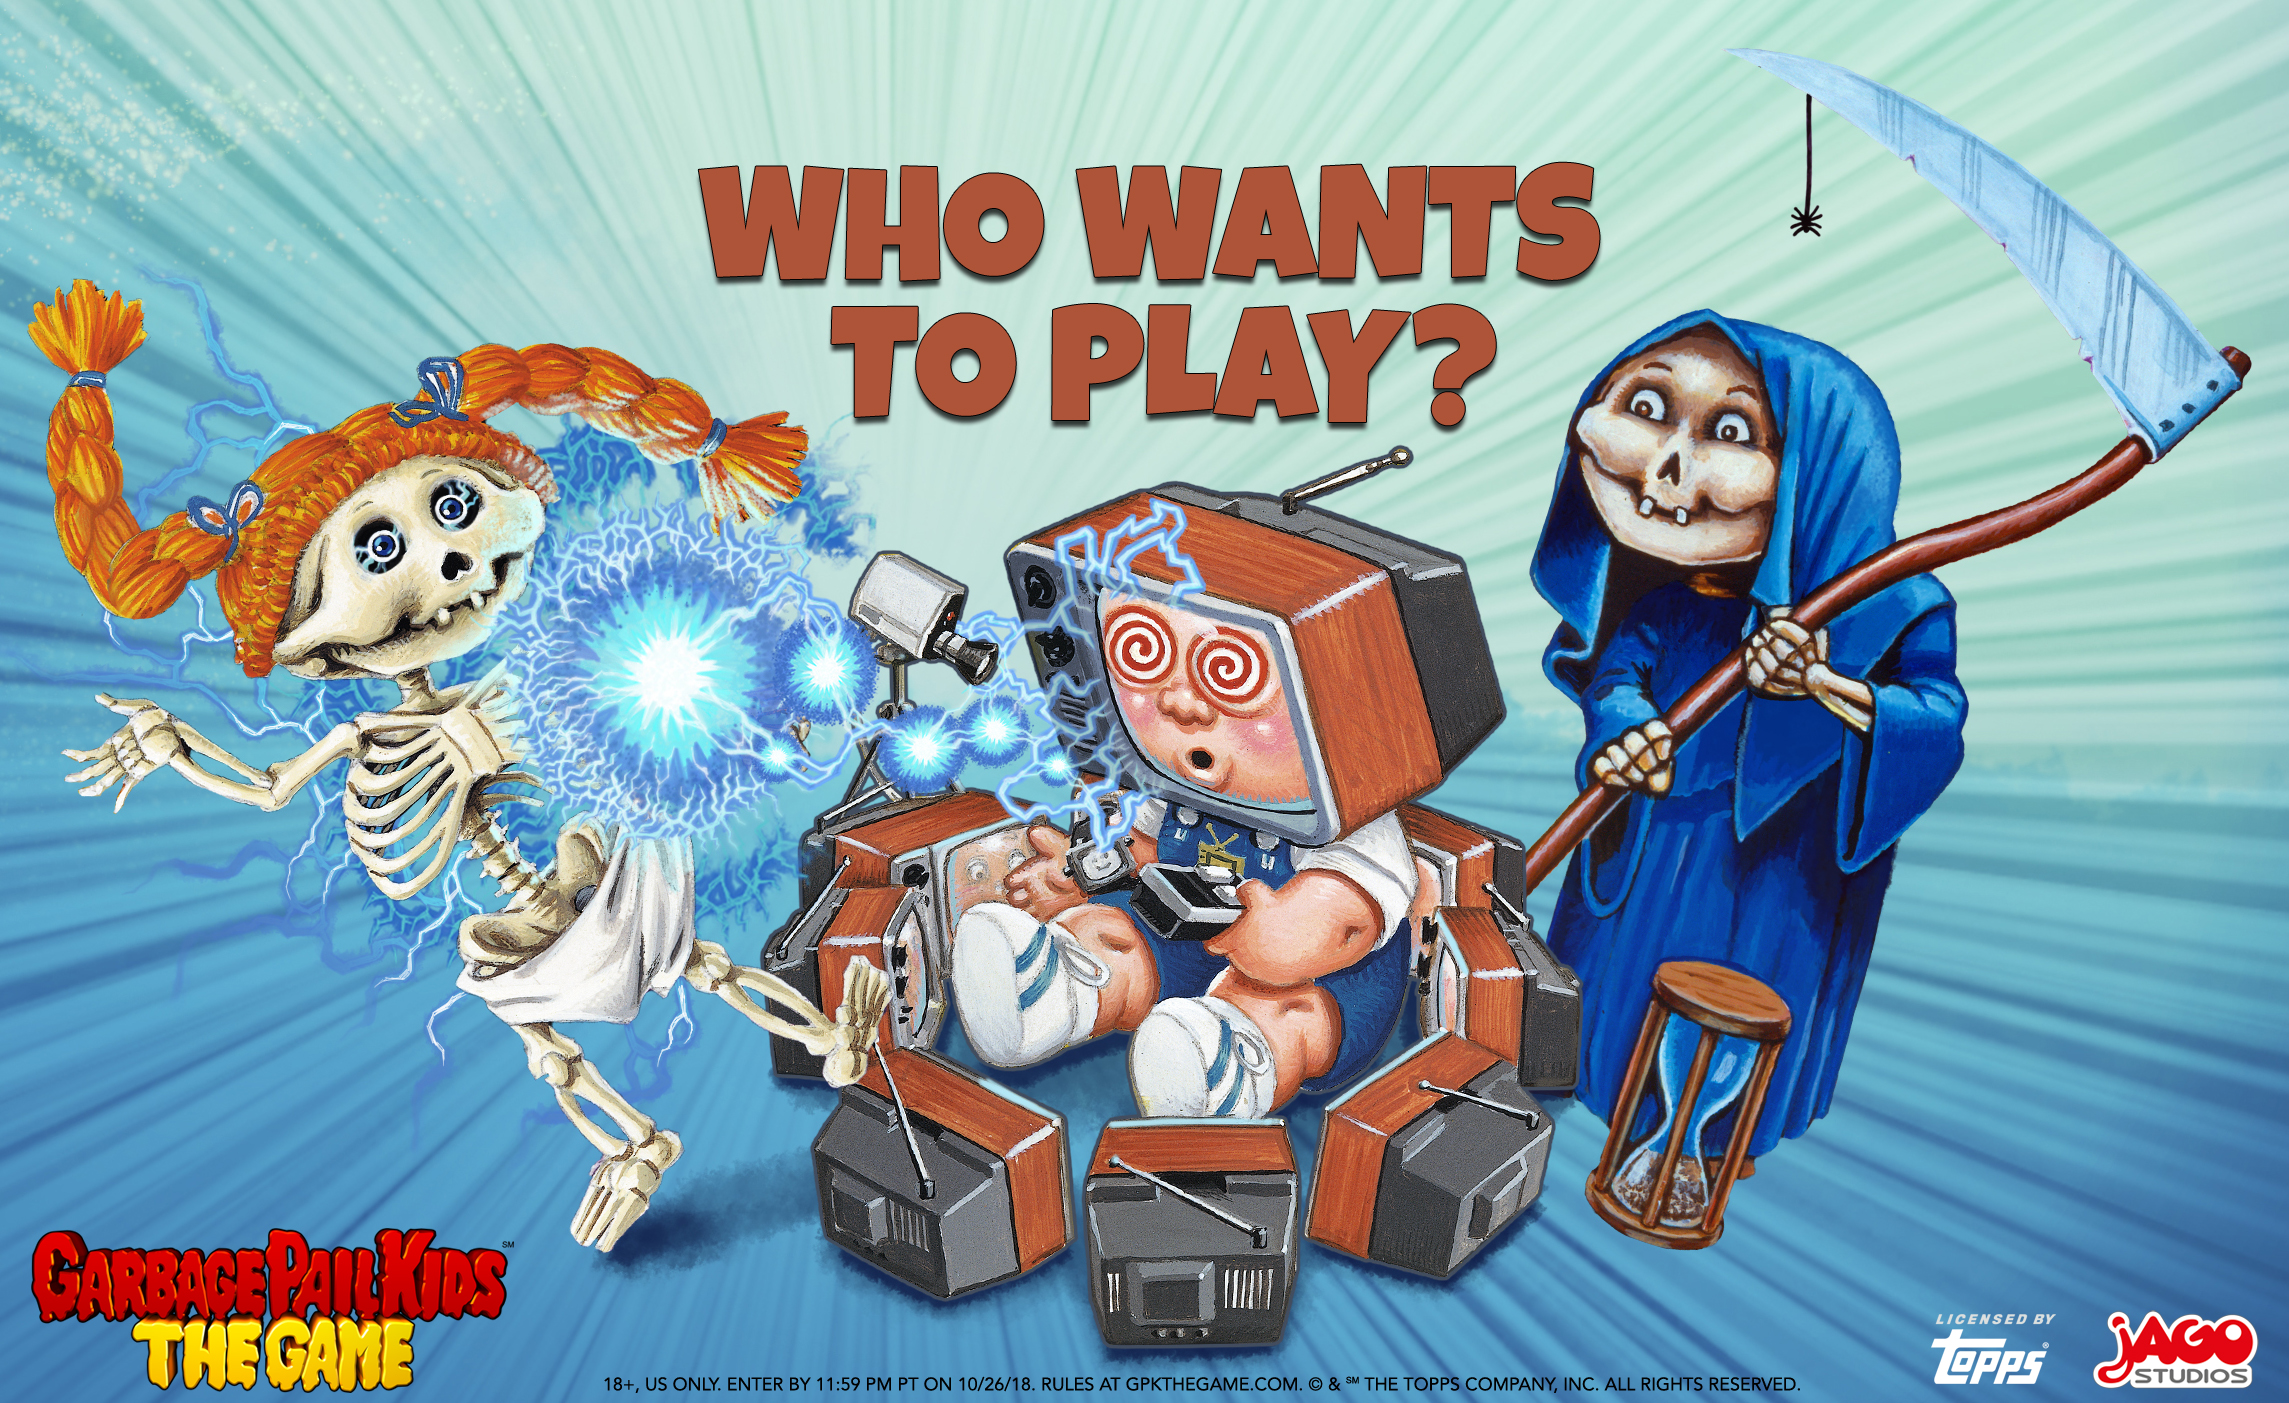 gpk_who_wants_to_play